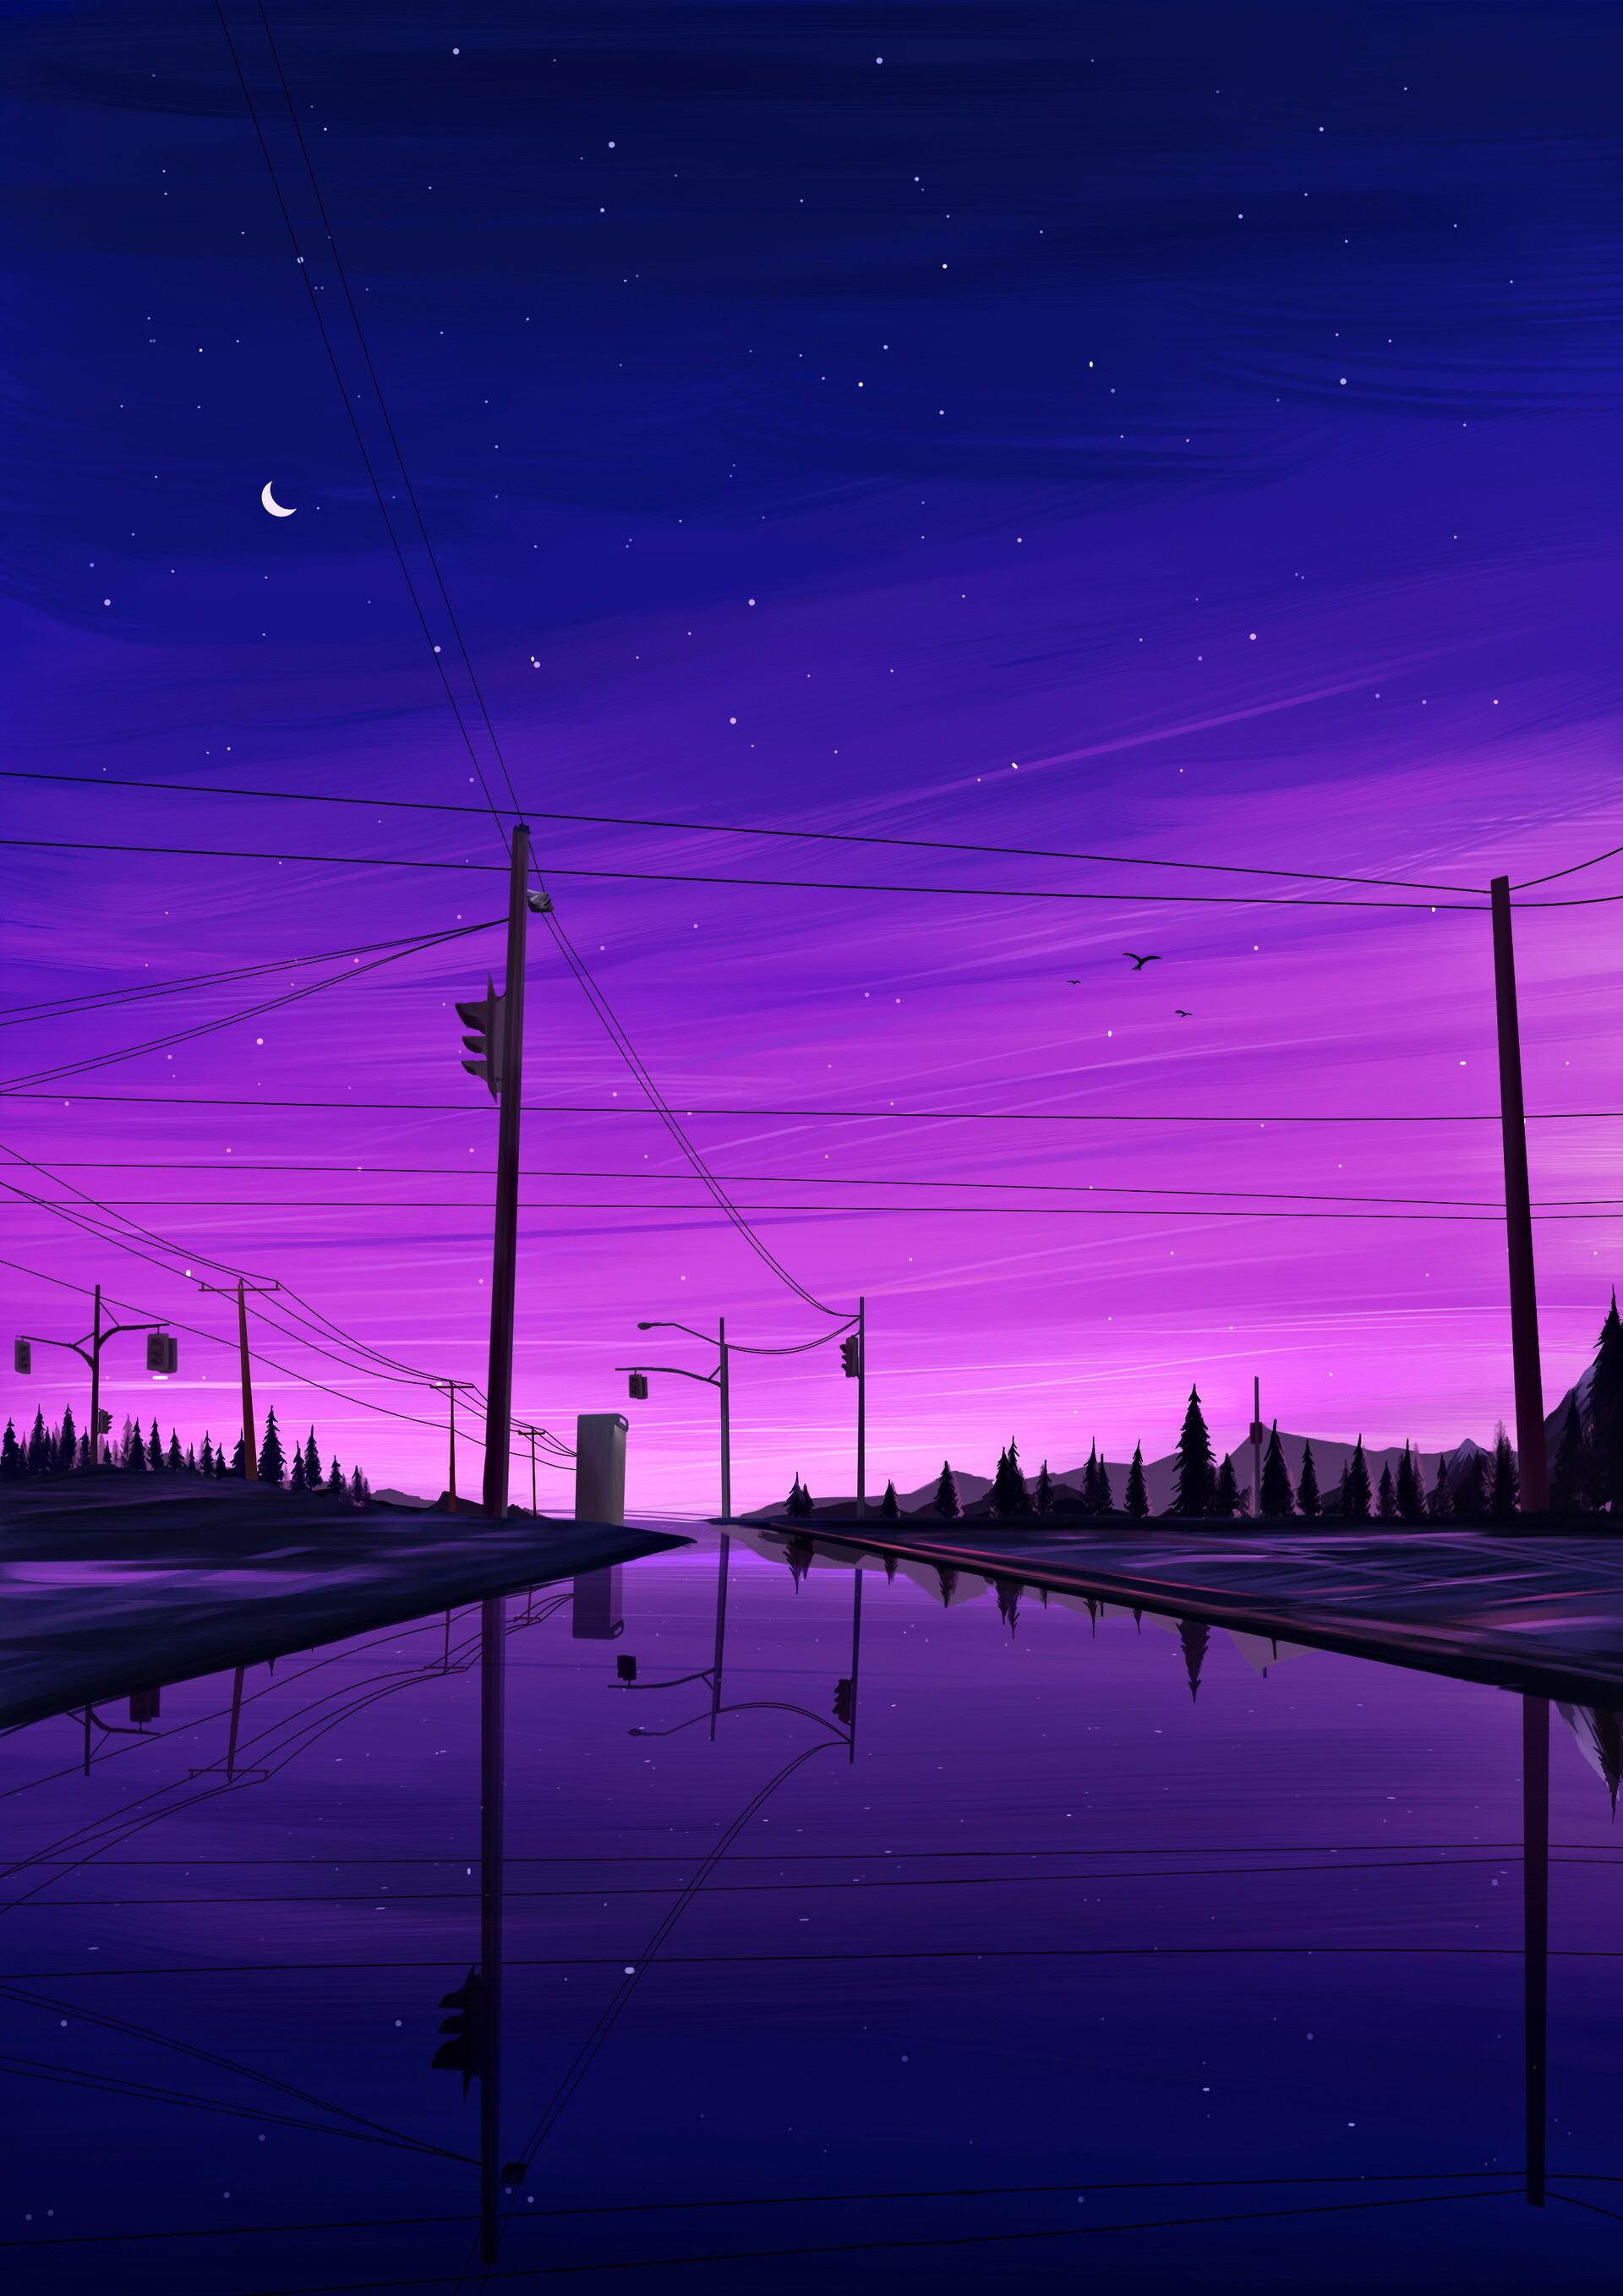 137245 download wallpaper Night, Landscape, Art, Dark screensavers and pictures for free